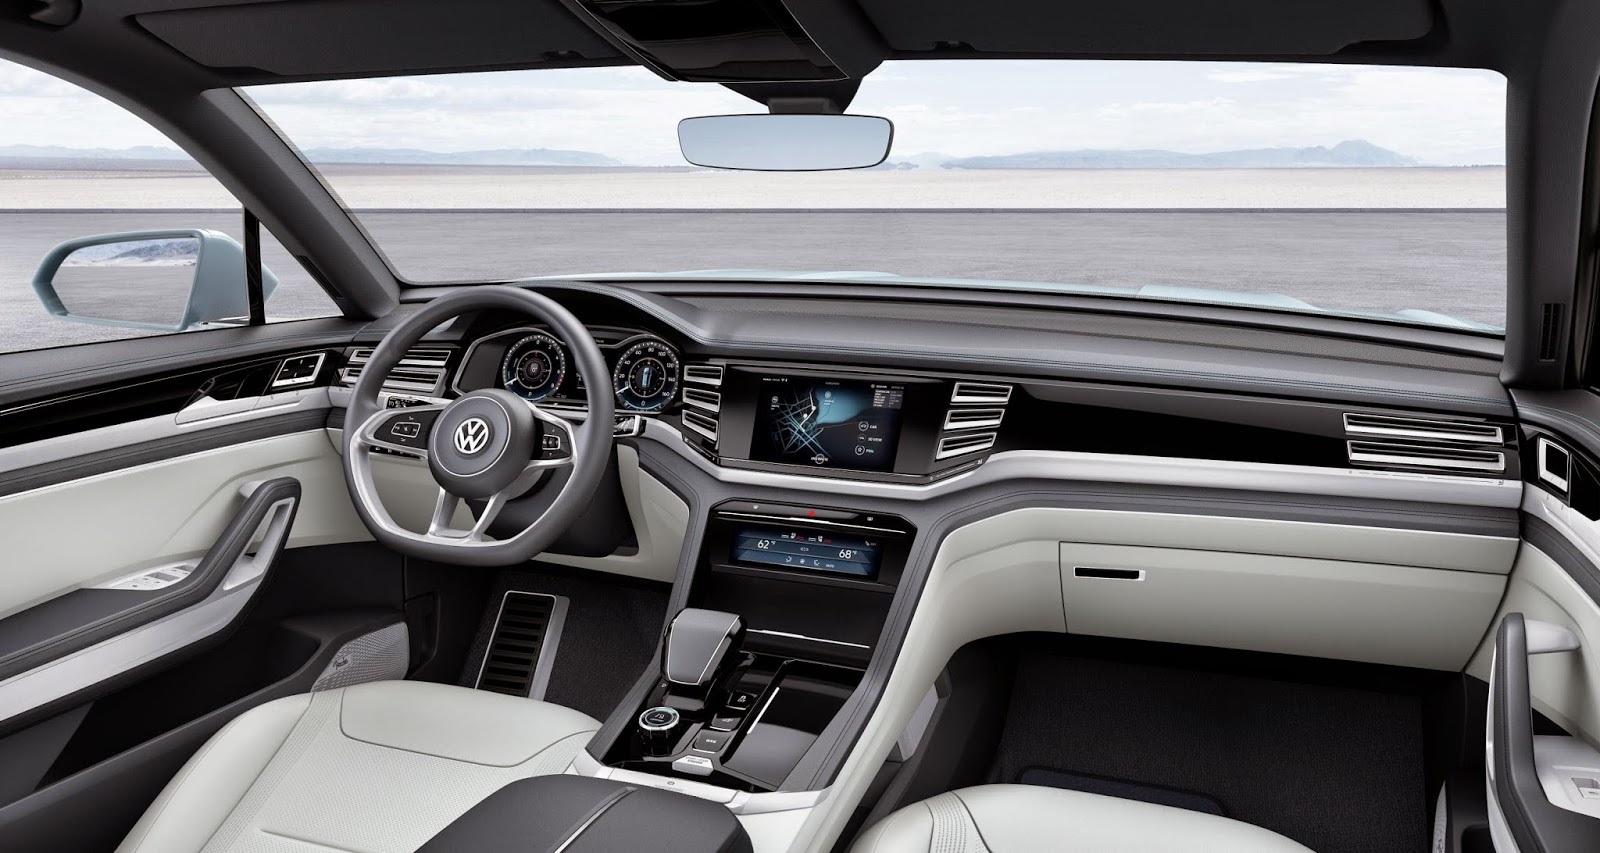 Volkswagen Cross coupe GTE interior